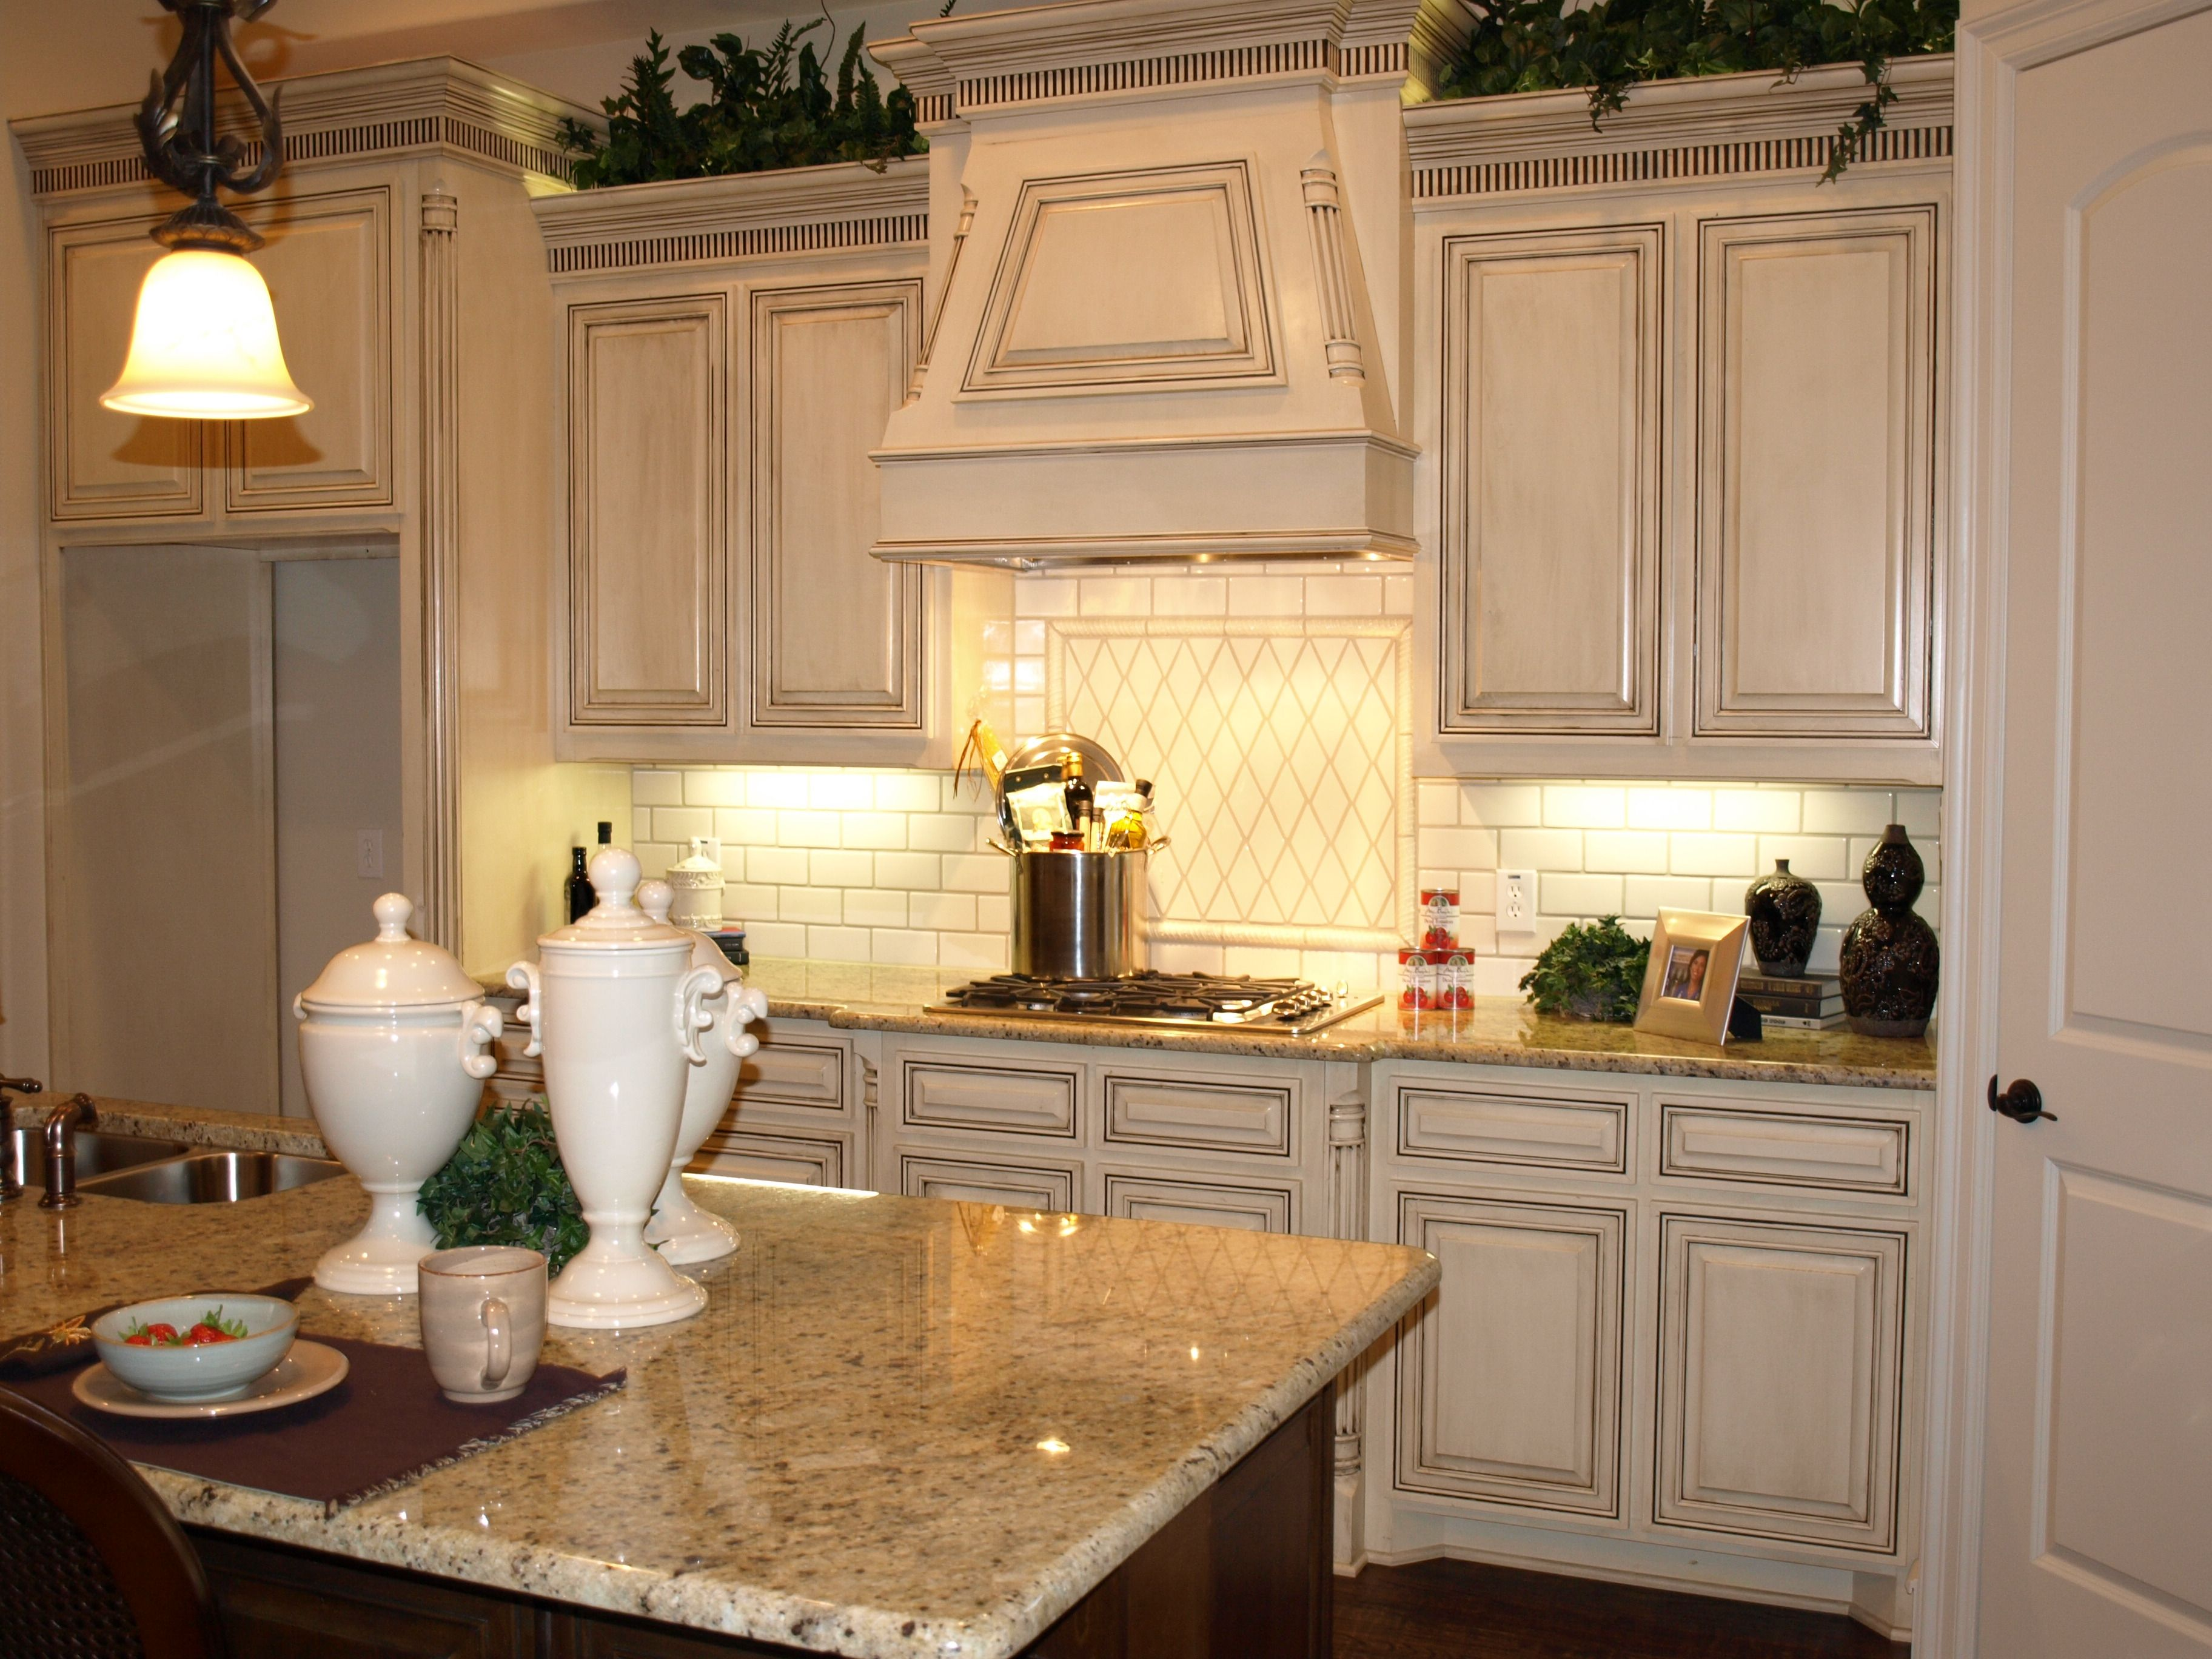 Love These Antique Looking Cupboards Glazed Kitchen Cabinets Distressed Kitchen Cabinets Antique White Kitchen